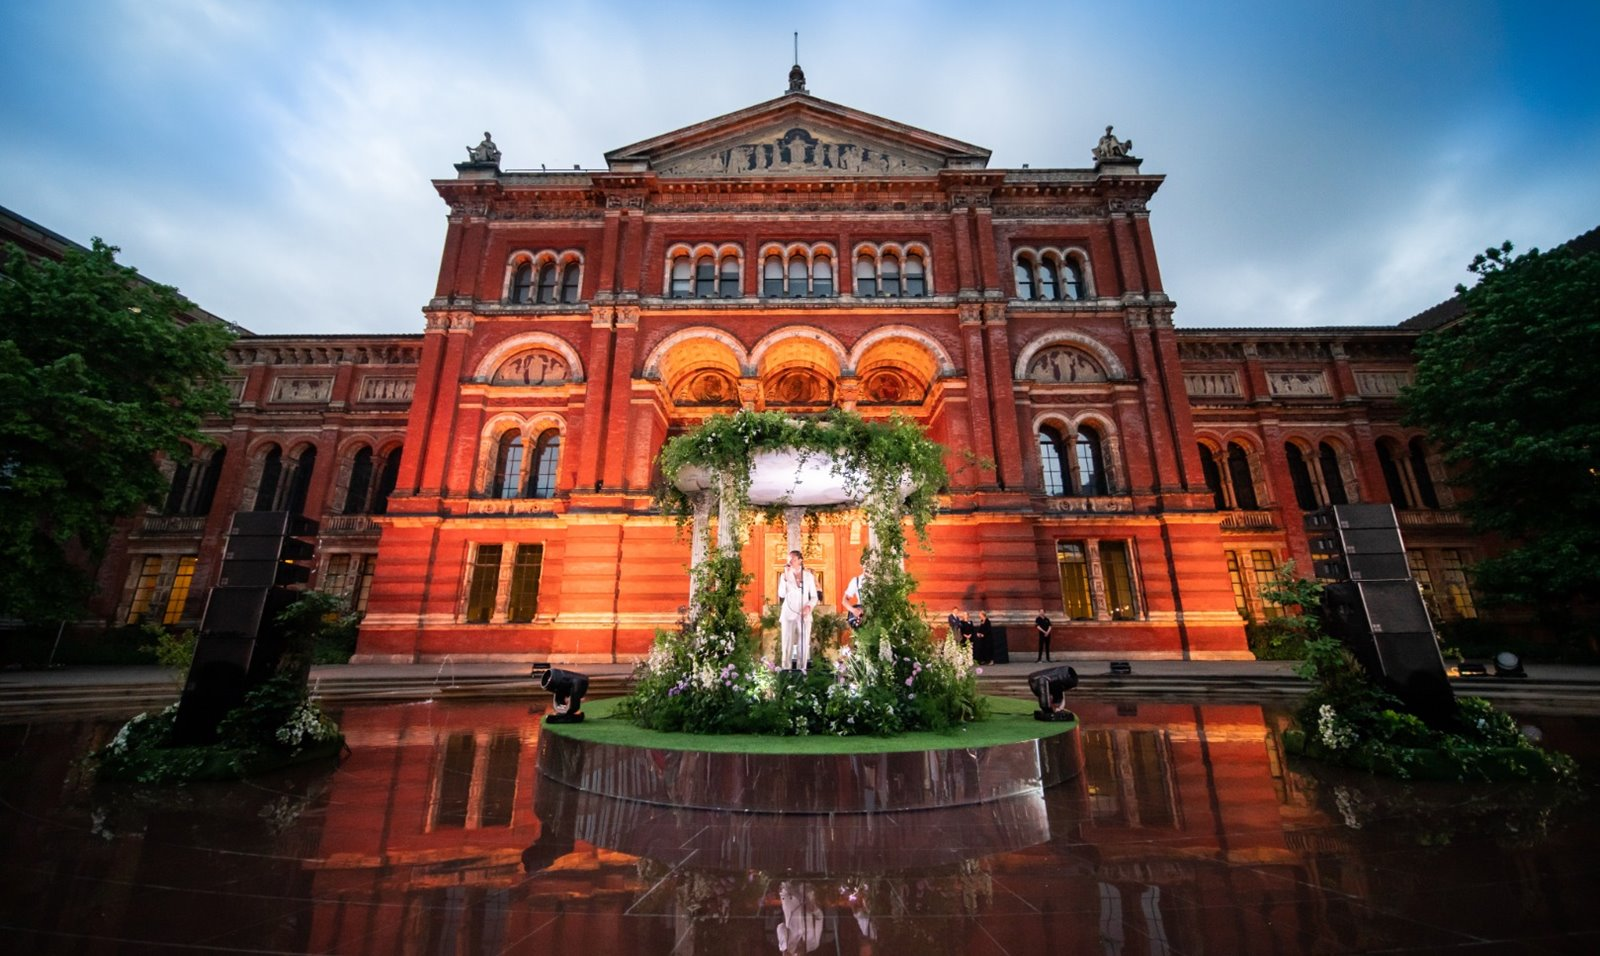 Summer party at the V&A with central stage)